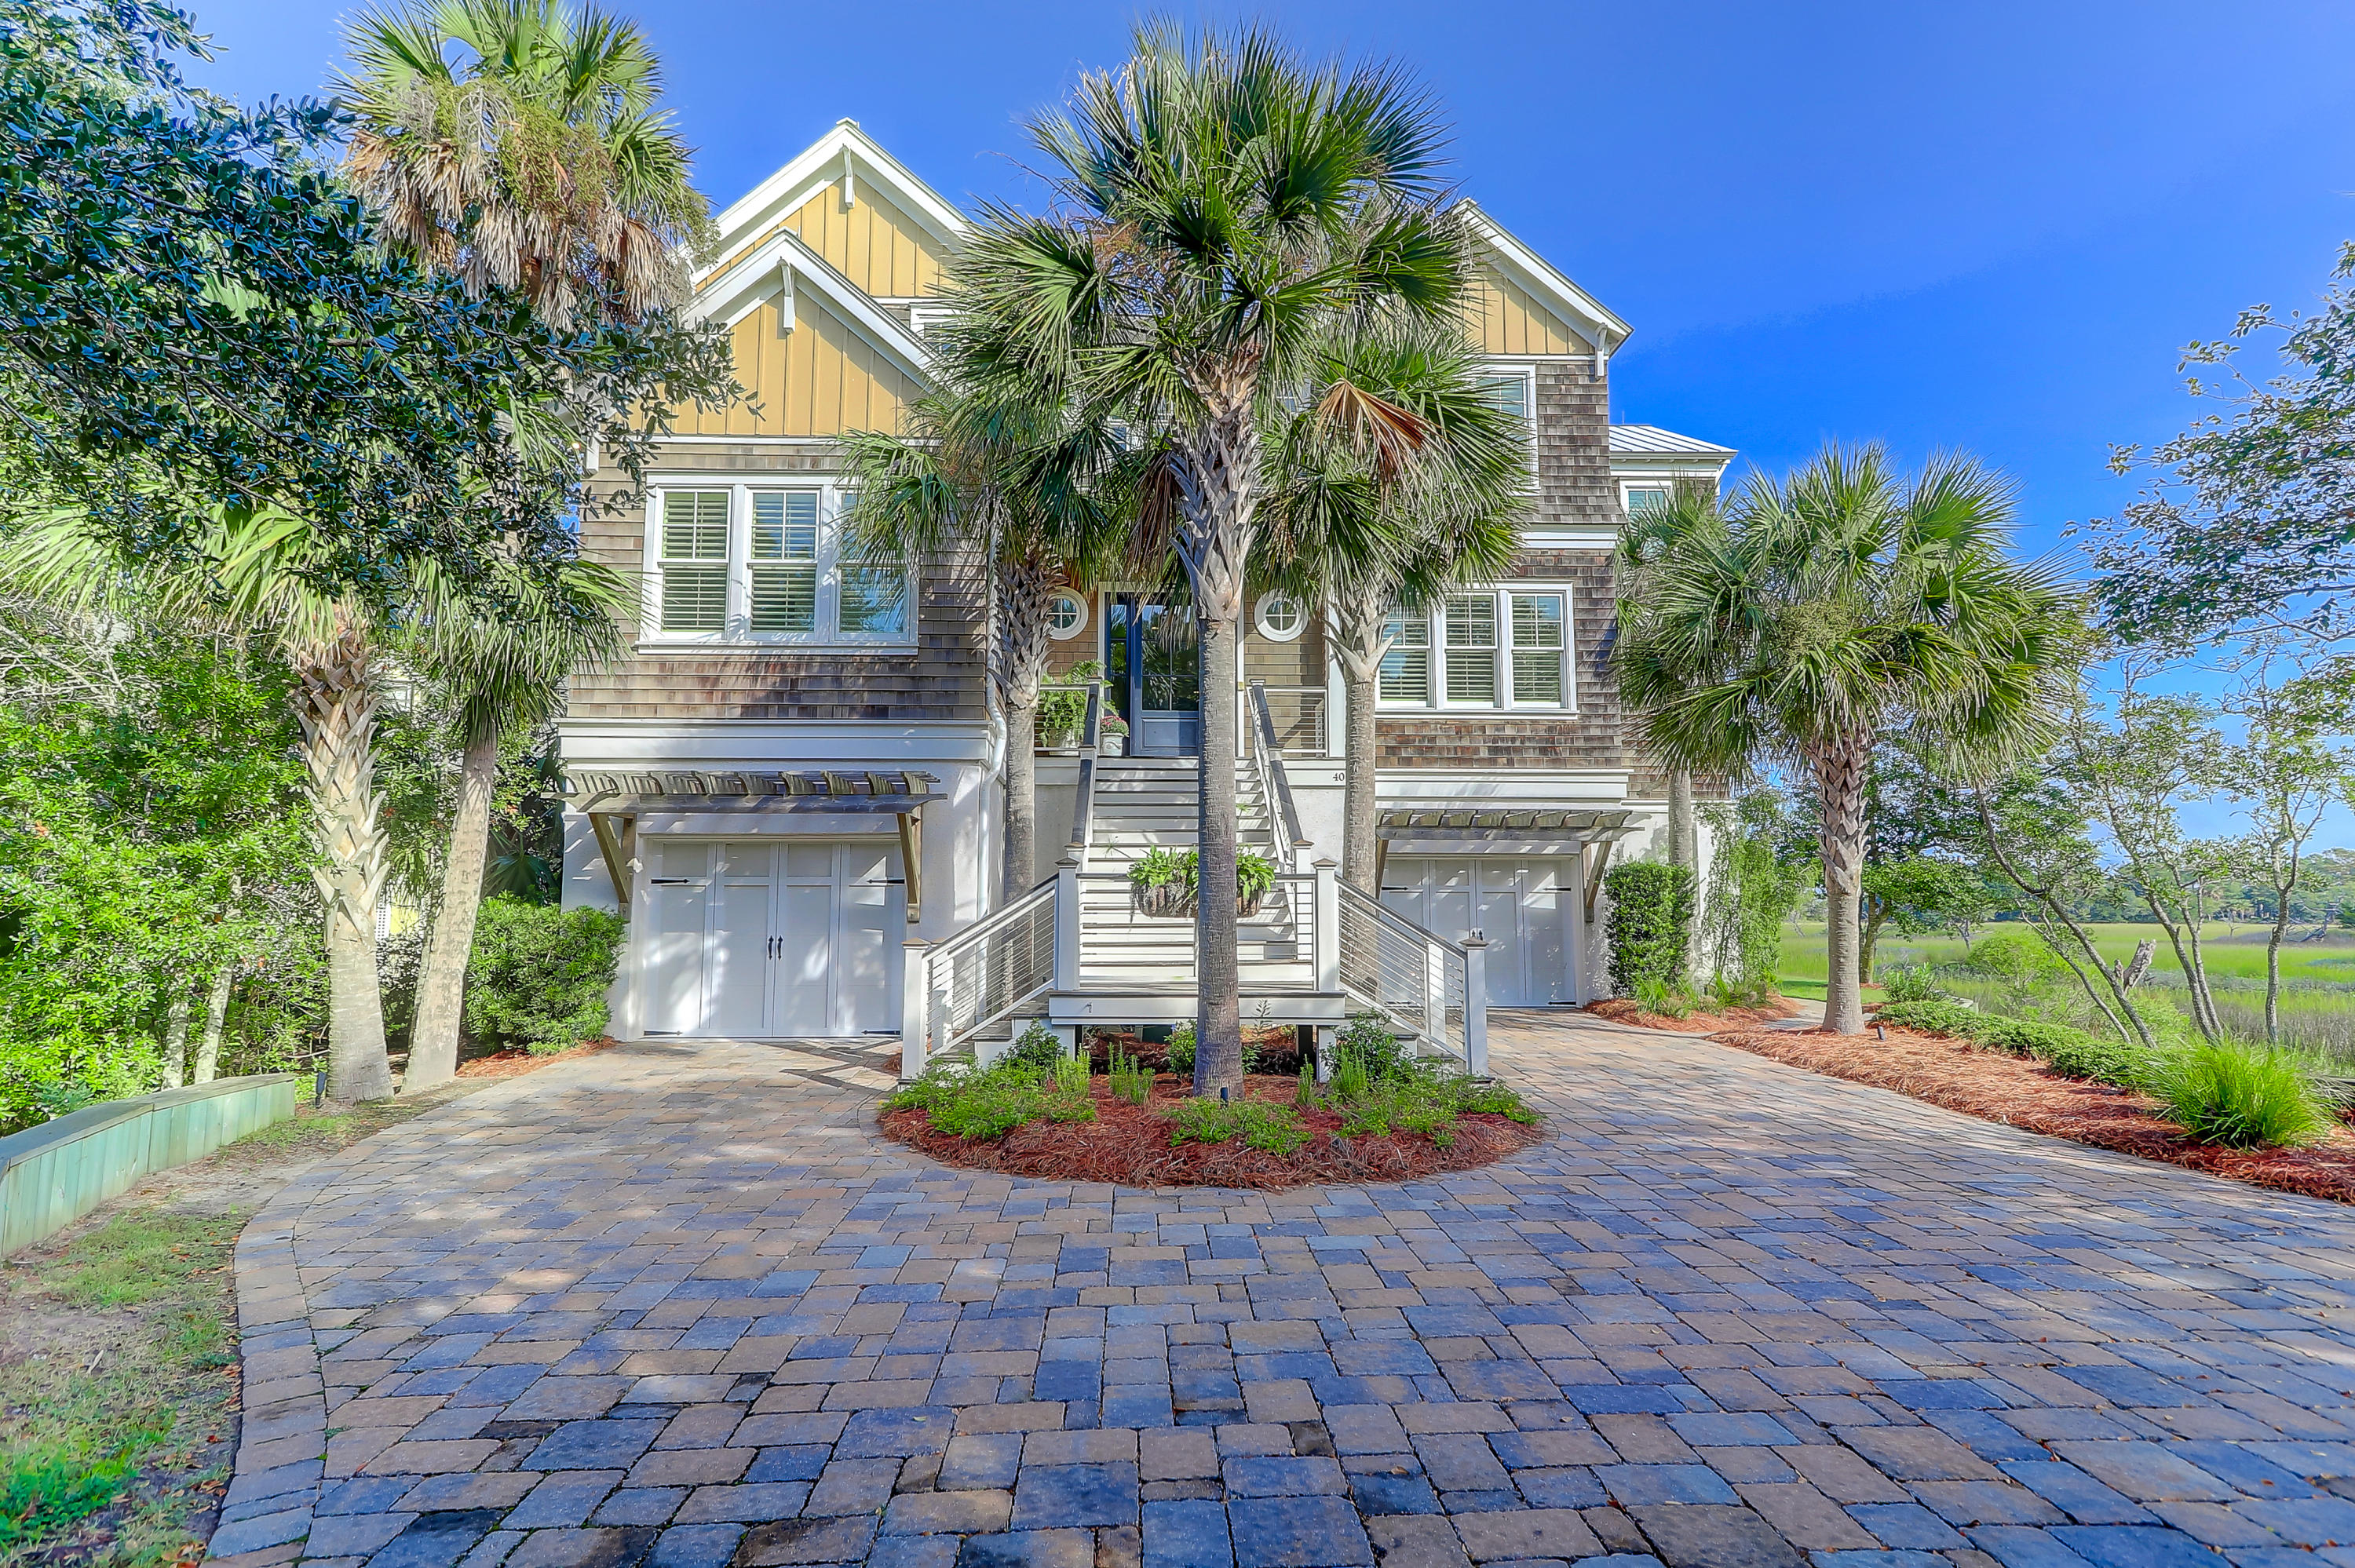 Wild Dunes Homes For Sale - 40 Seagrass, Isle of Palms, SC - 98